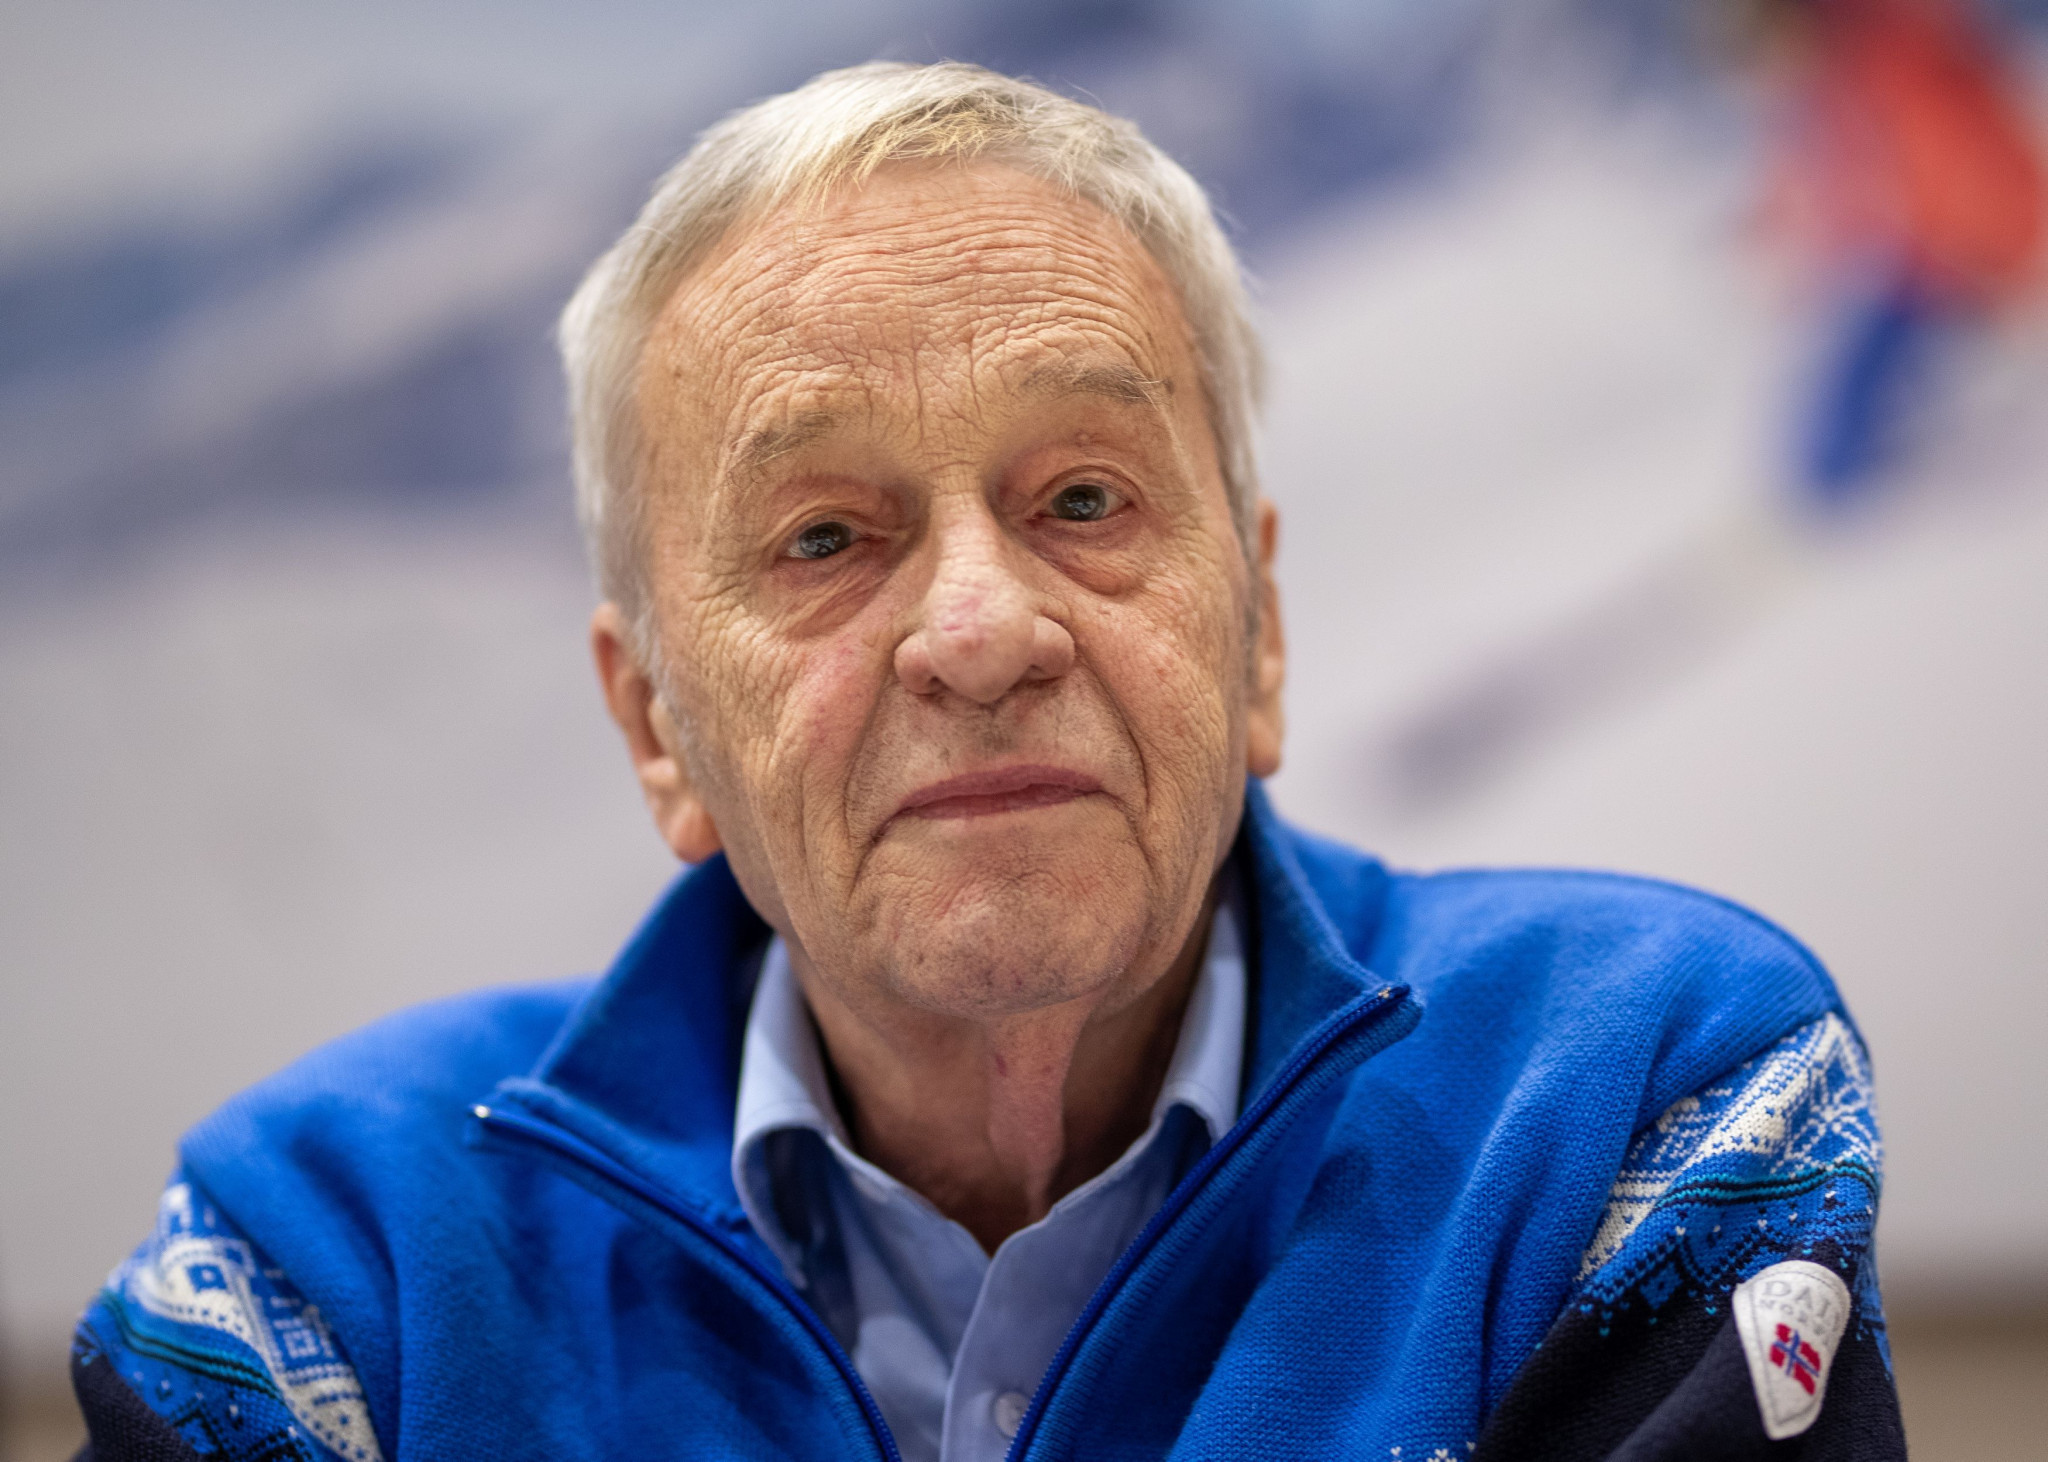 FIS Presidential candidates have highlighted their climate credentials after incumbent Gian-Franco Kasper was criticised for his views ©Getty Images